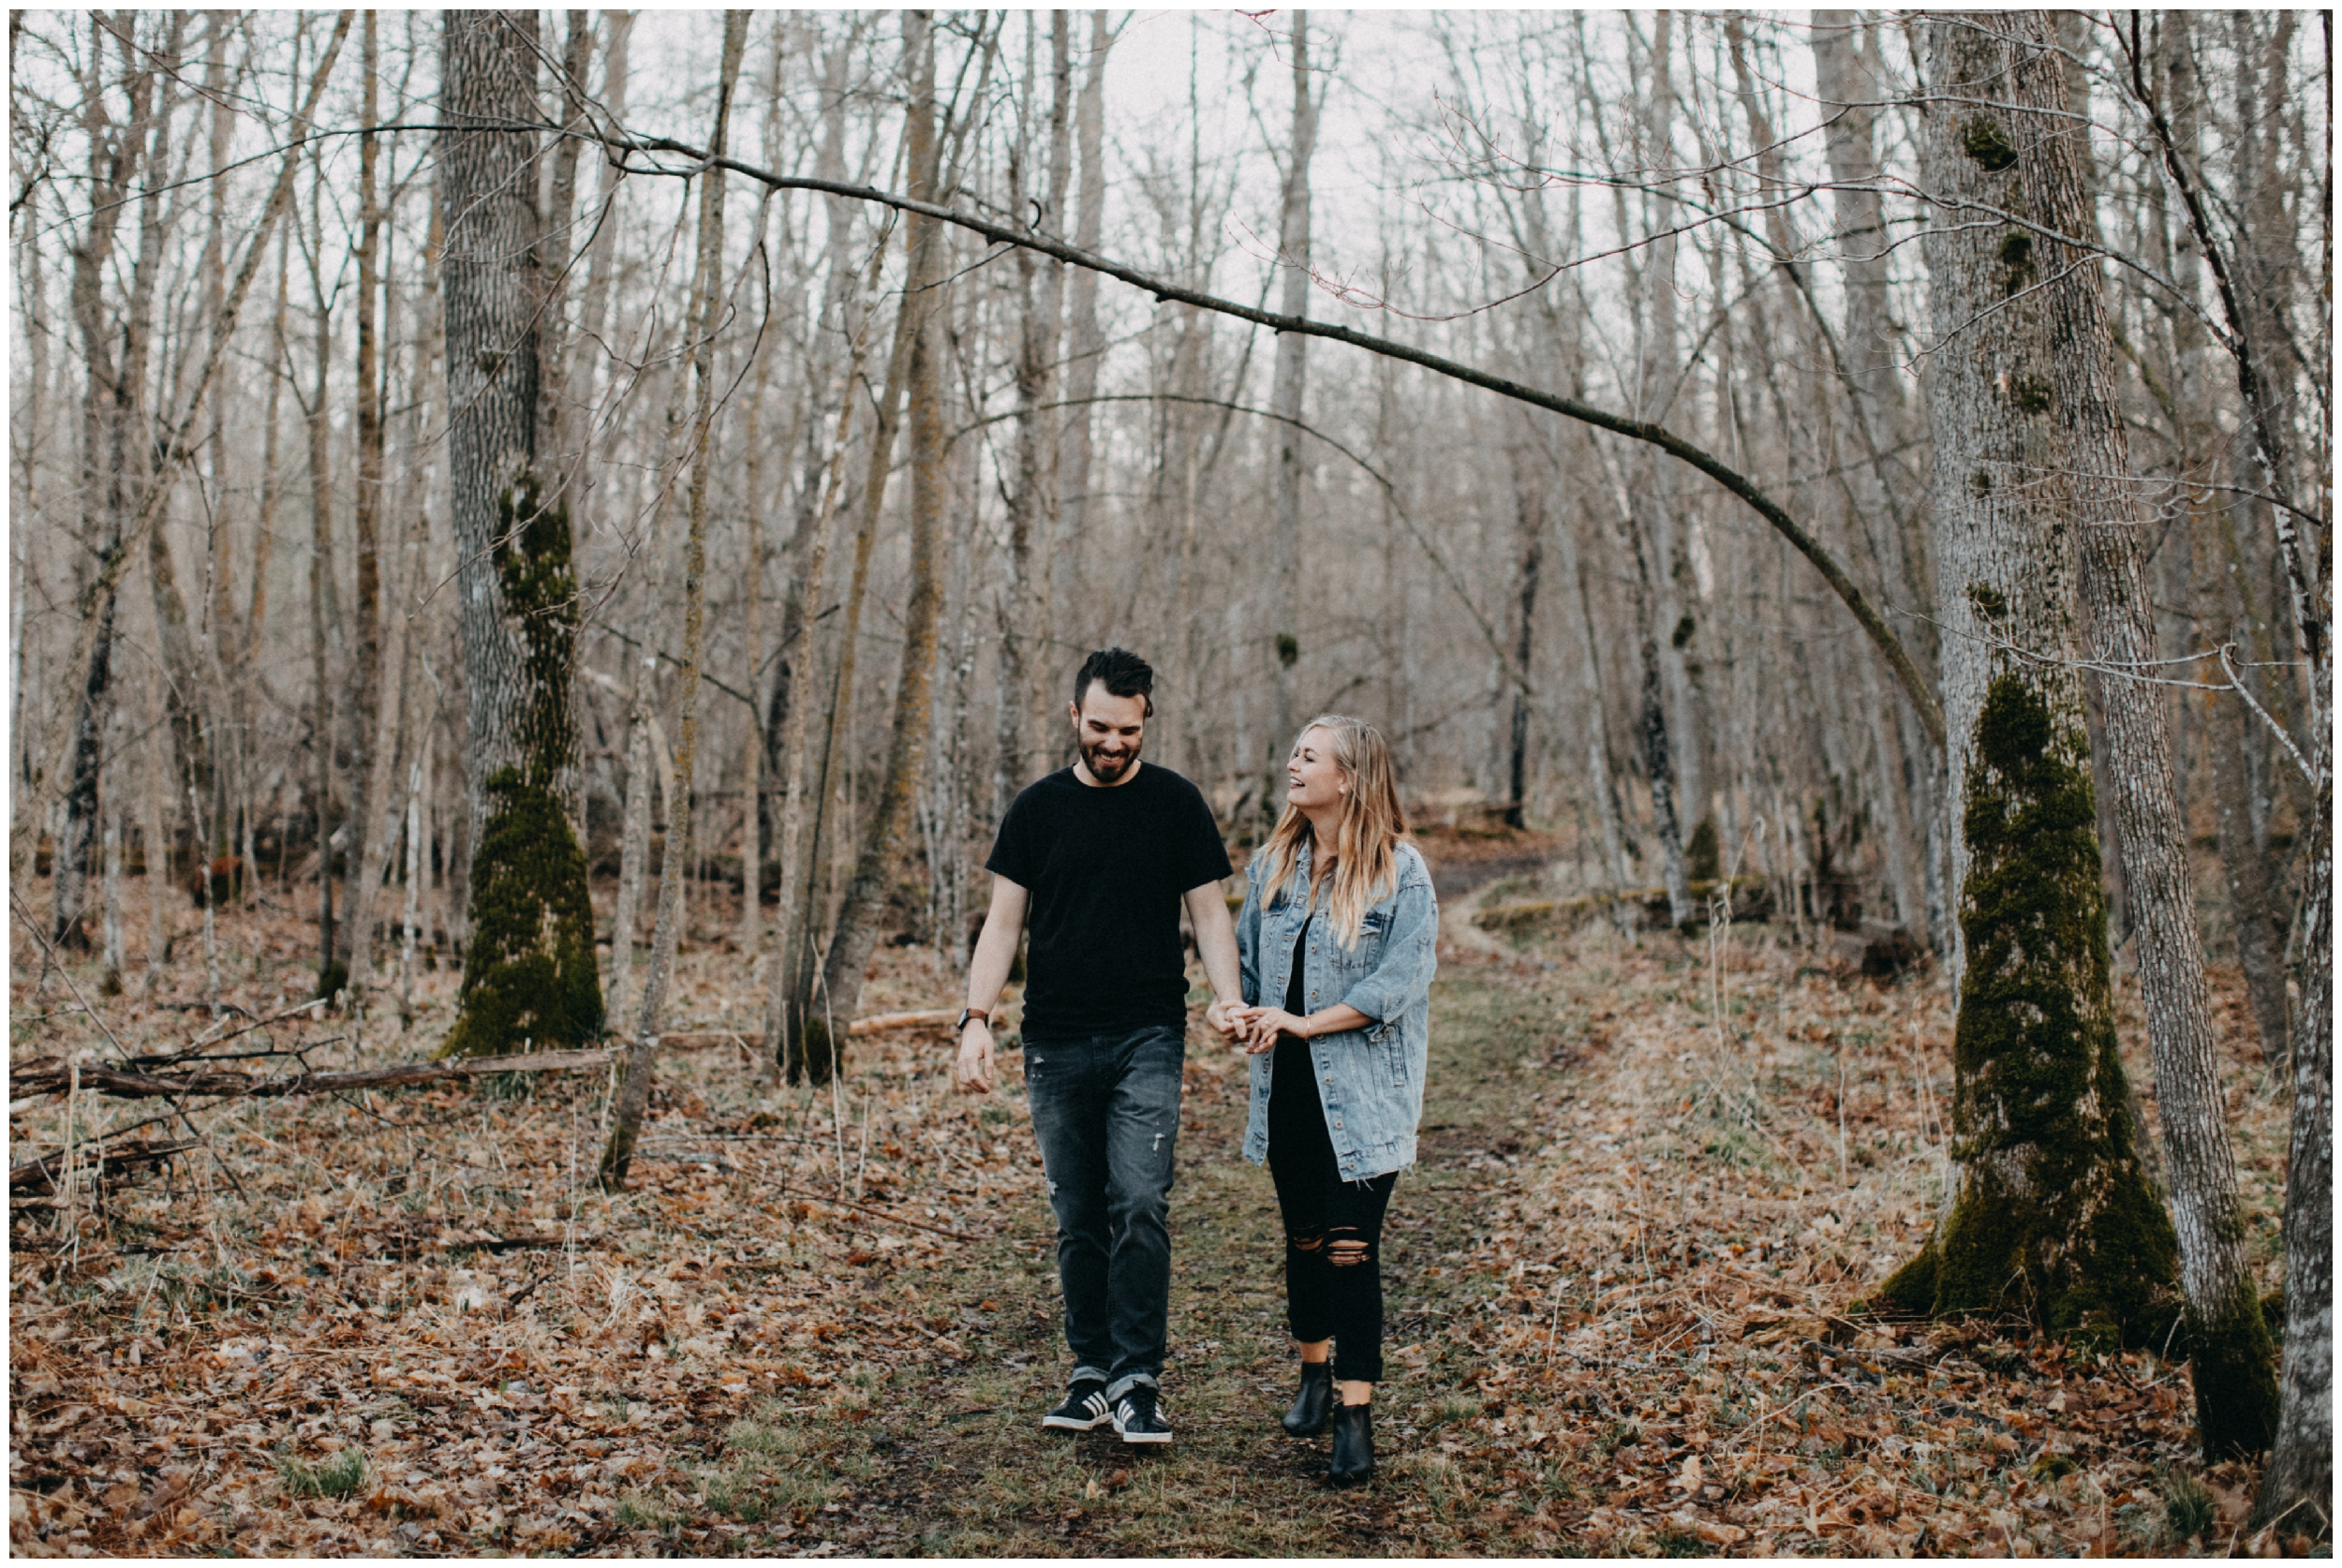 Northern Minnesota engagement session in the woods